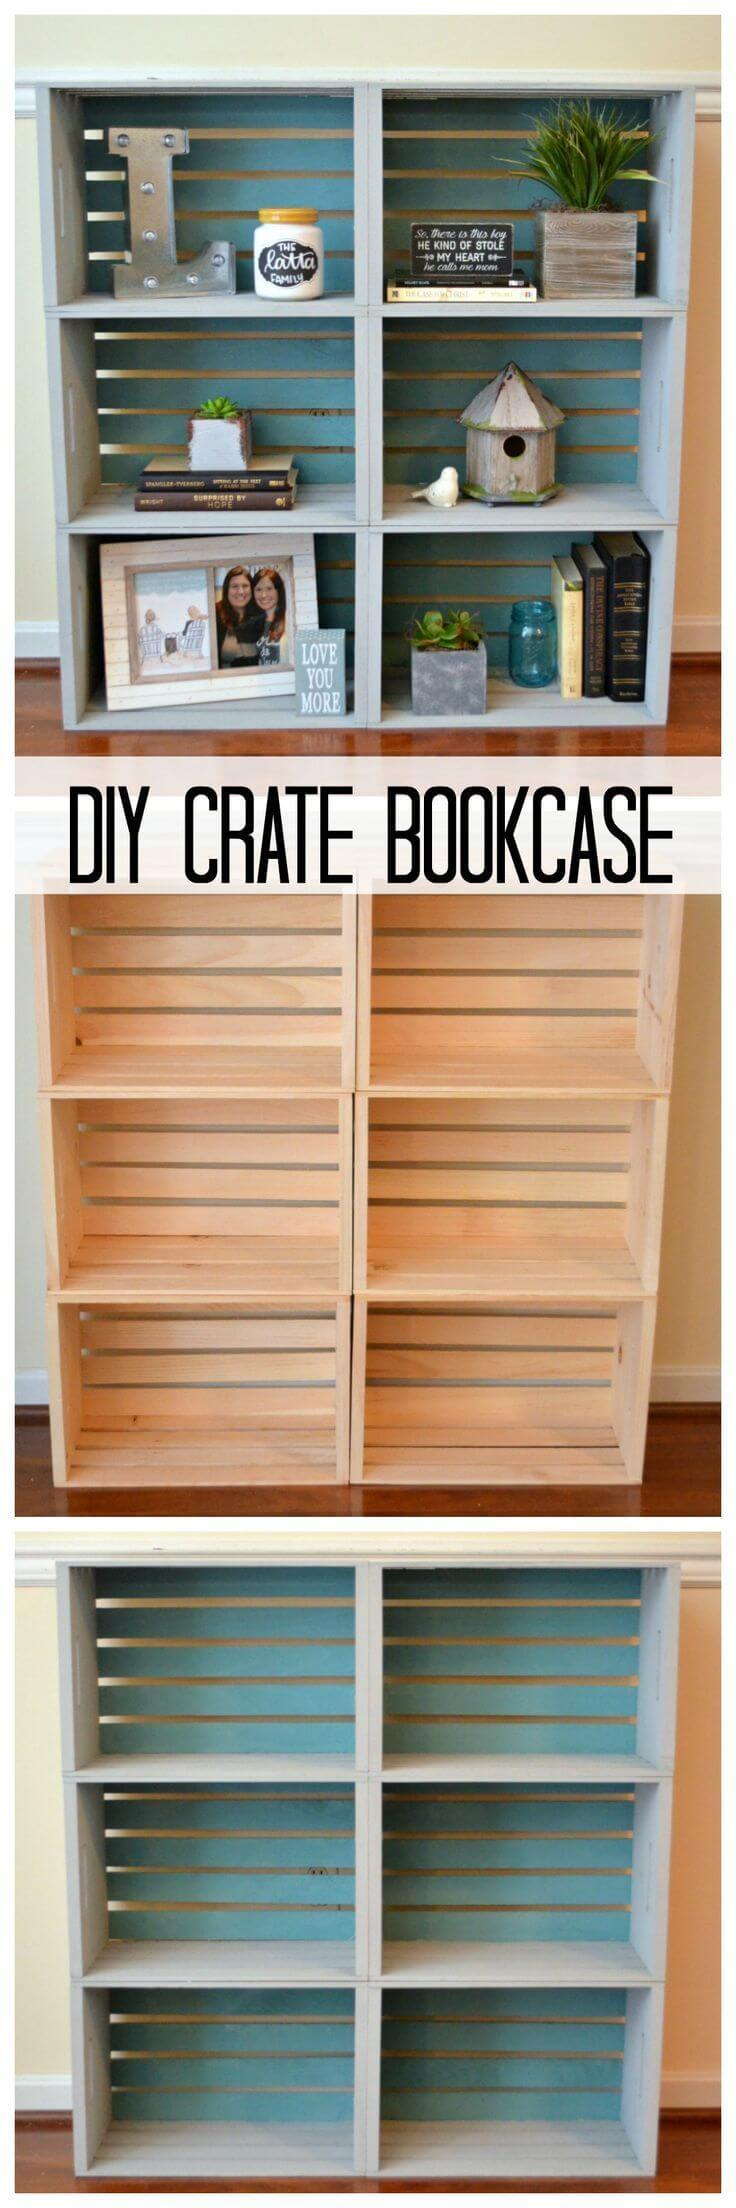 How to Build a Crate Bookcase